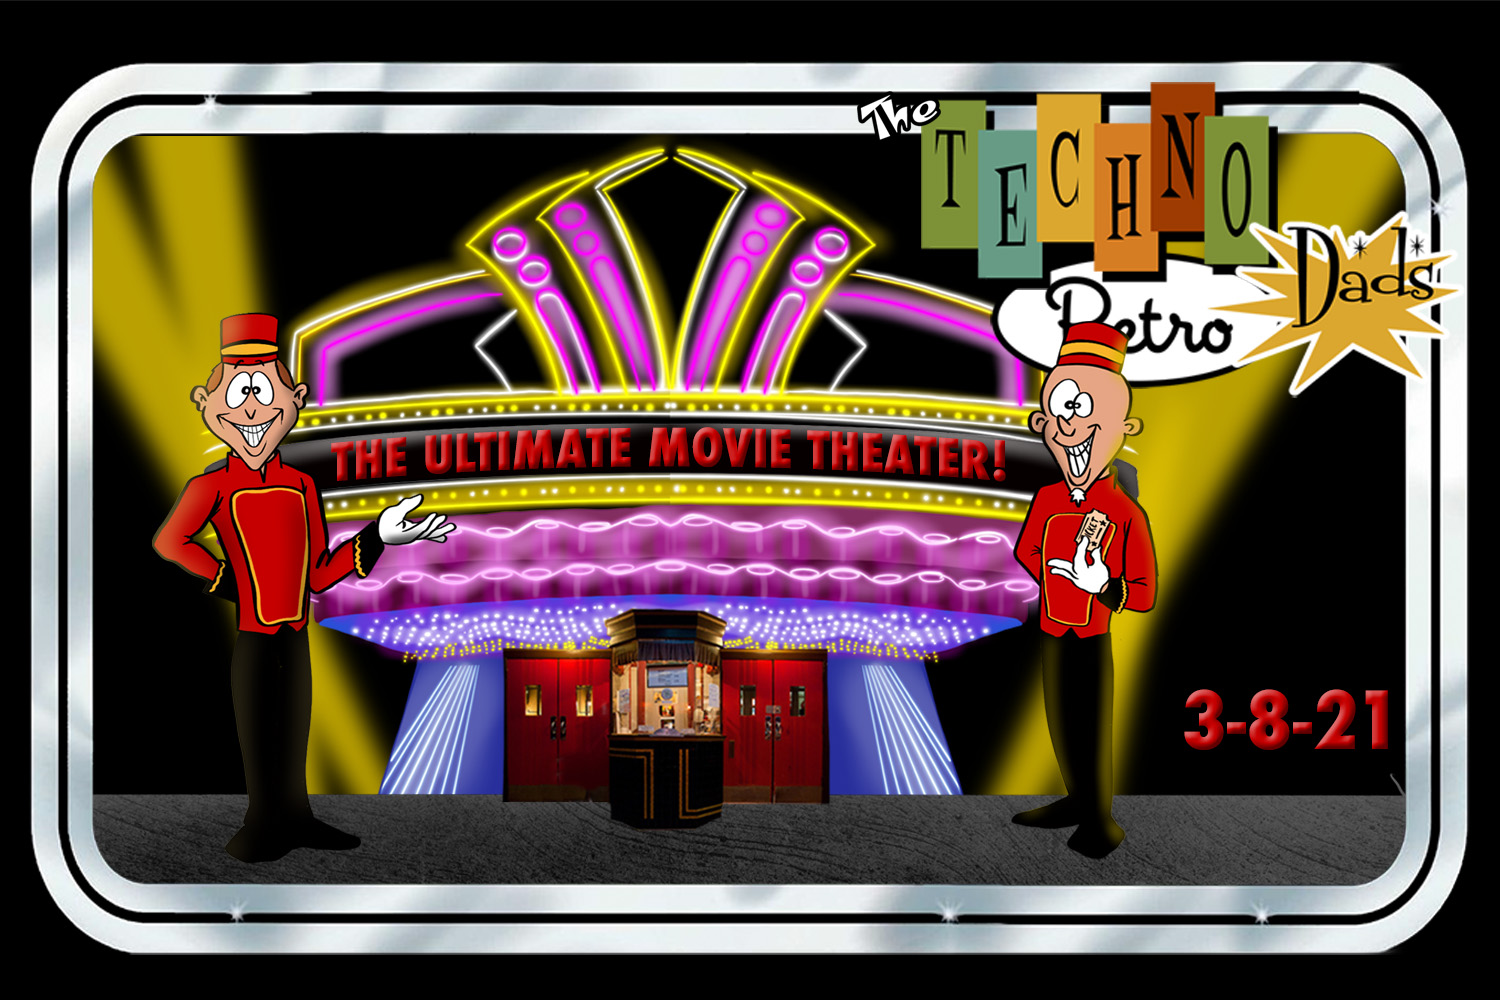 TechnoRetro Dads: Let's All Go to the Movies!